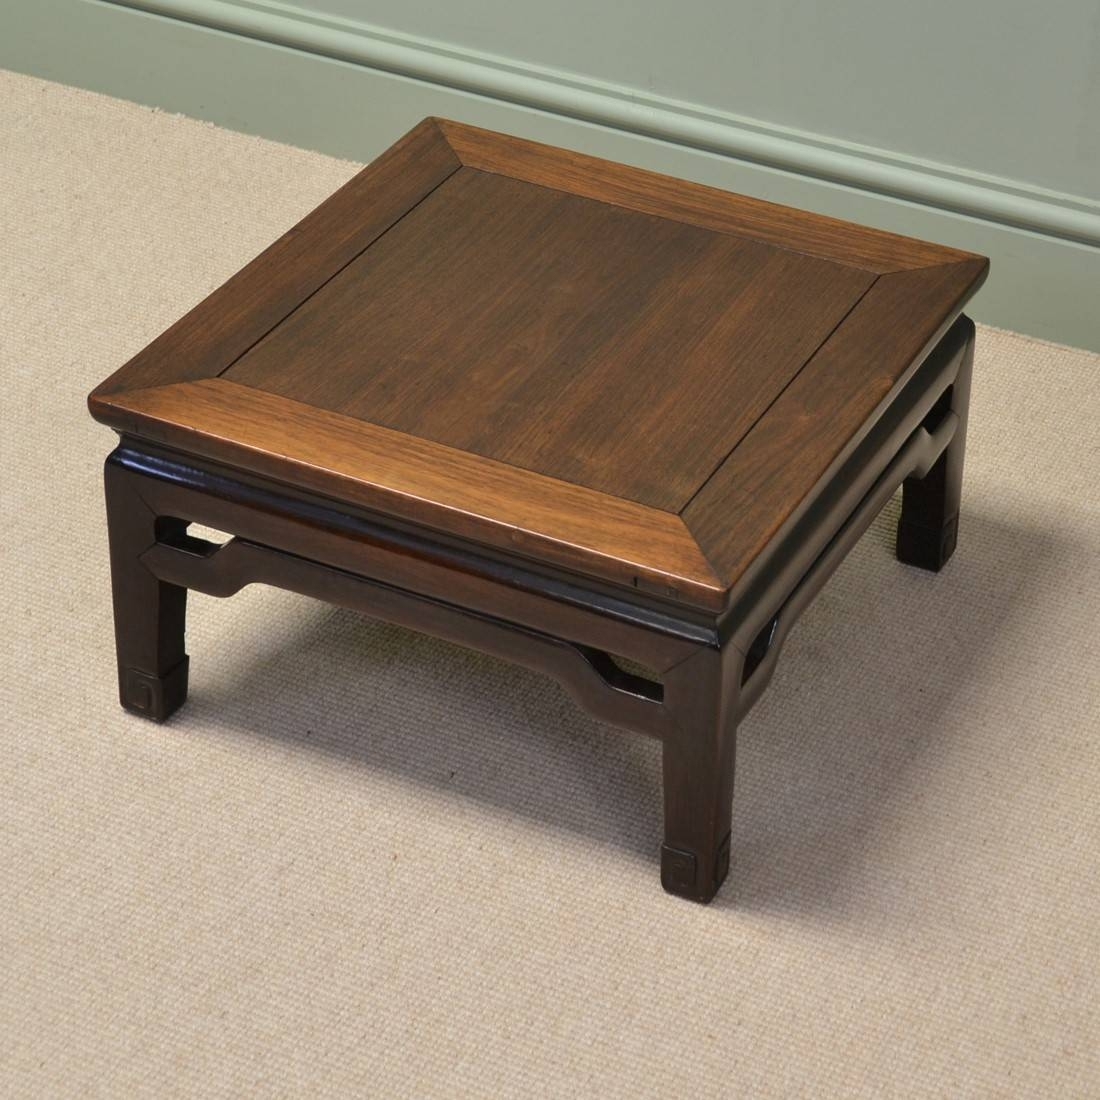 Furniture. Chinese Coffee Table Design Ideas: Dark Brown Rectangle regarding Chinese Coffee Tables (Image 21 of 30)